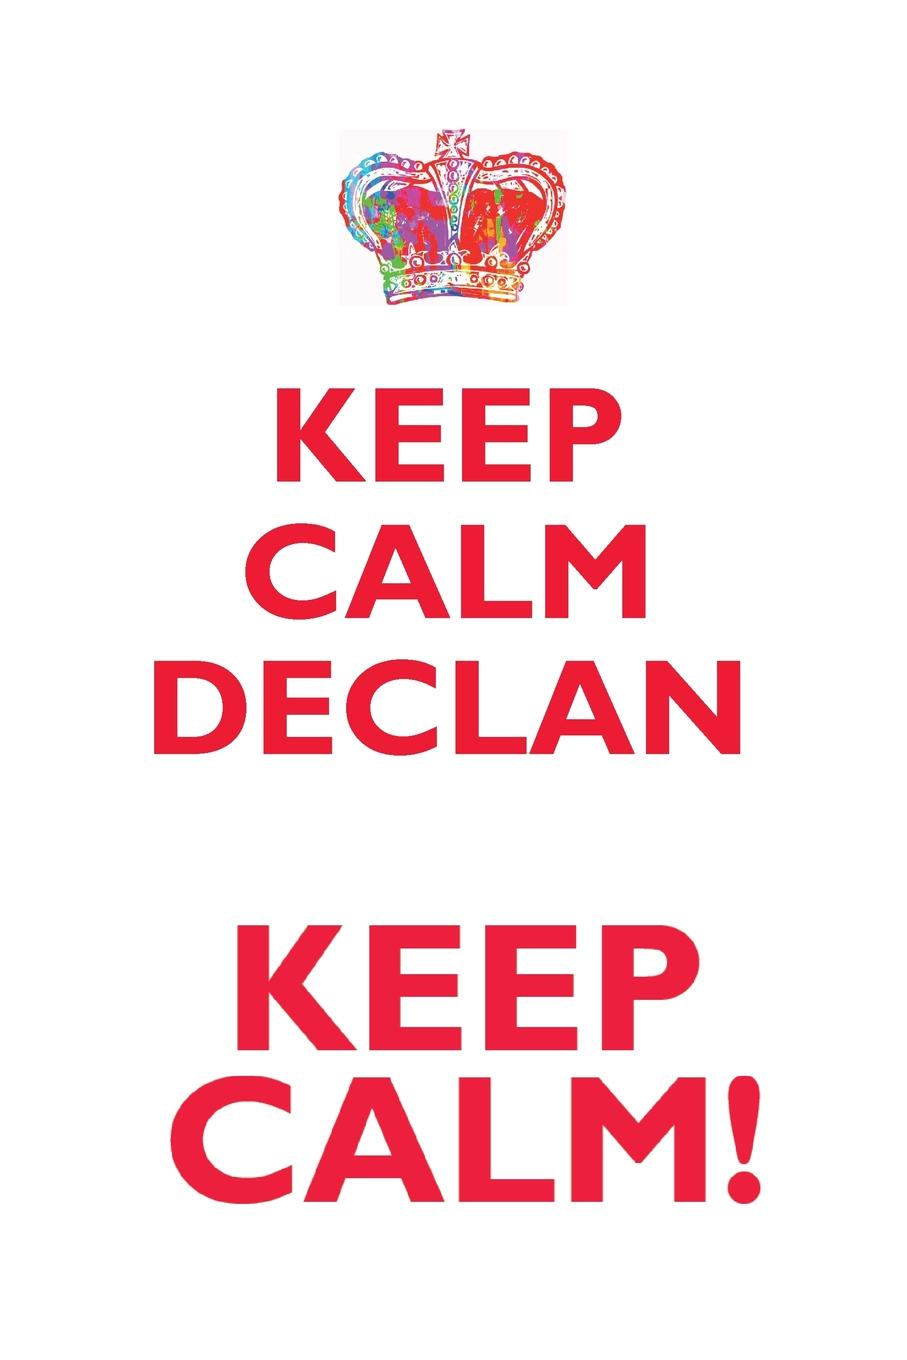 """KEEP CALM DECLAN! AFFIRMATIONS WORKBOOK Positive Affirmations Workbook Includes. Mentoring Questions, Guidance, Supporting You """"Do you want an interactive workbook that will help you..."""